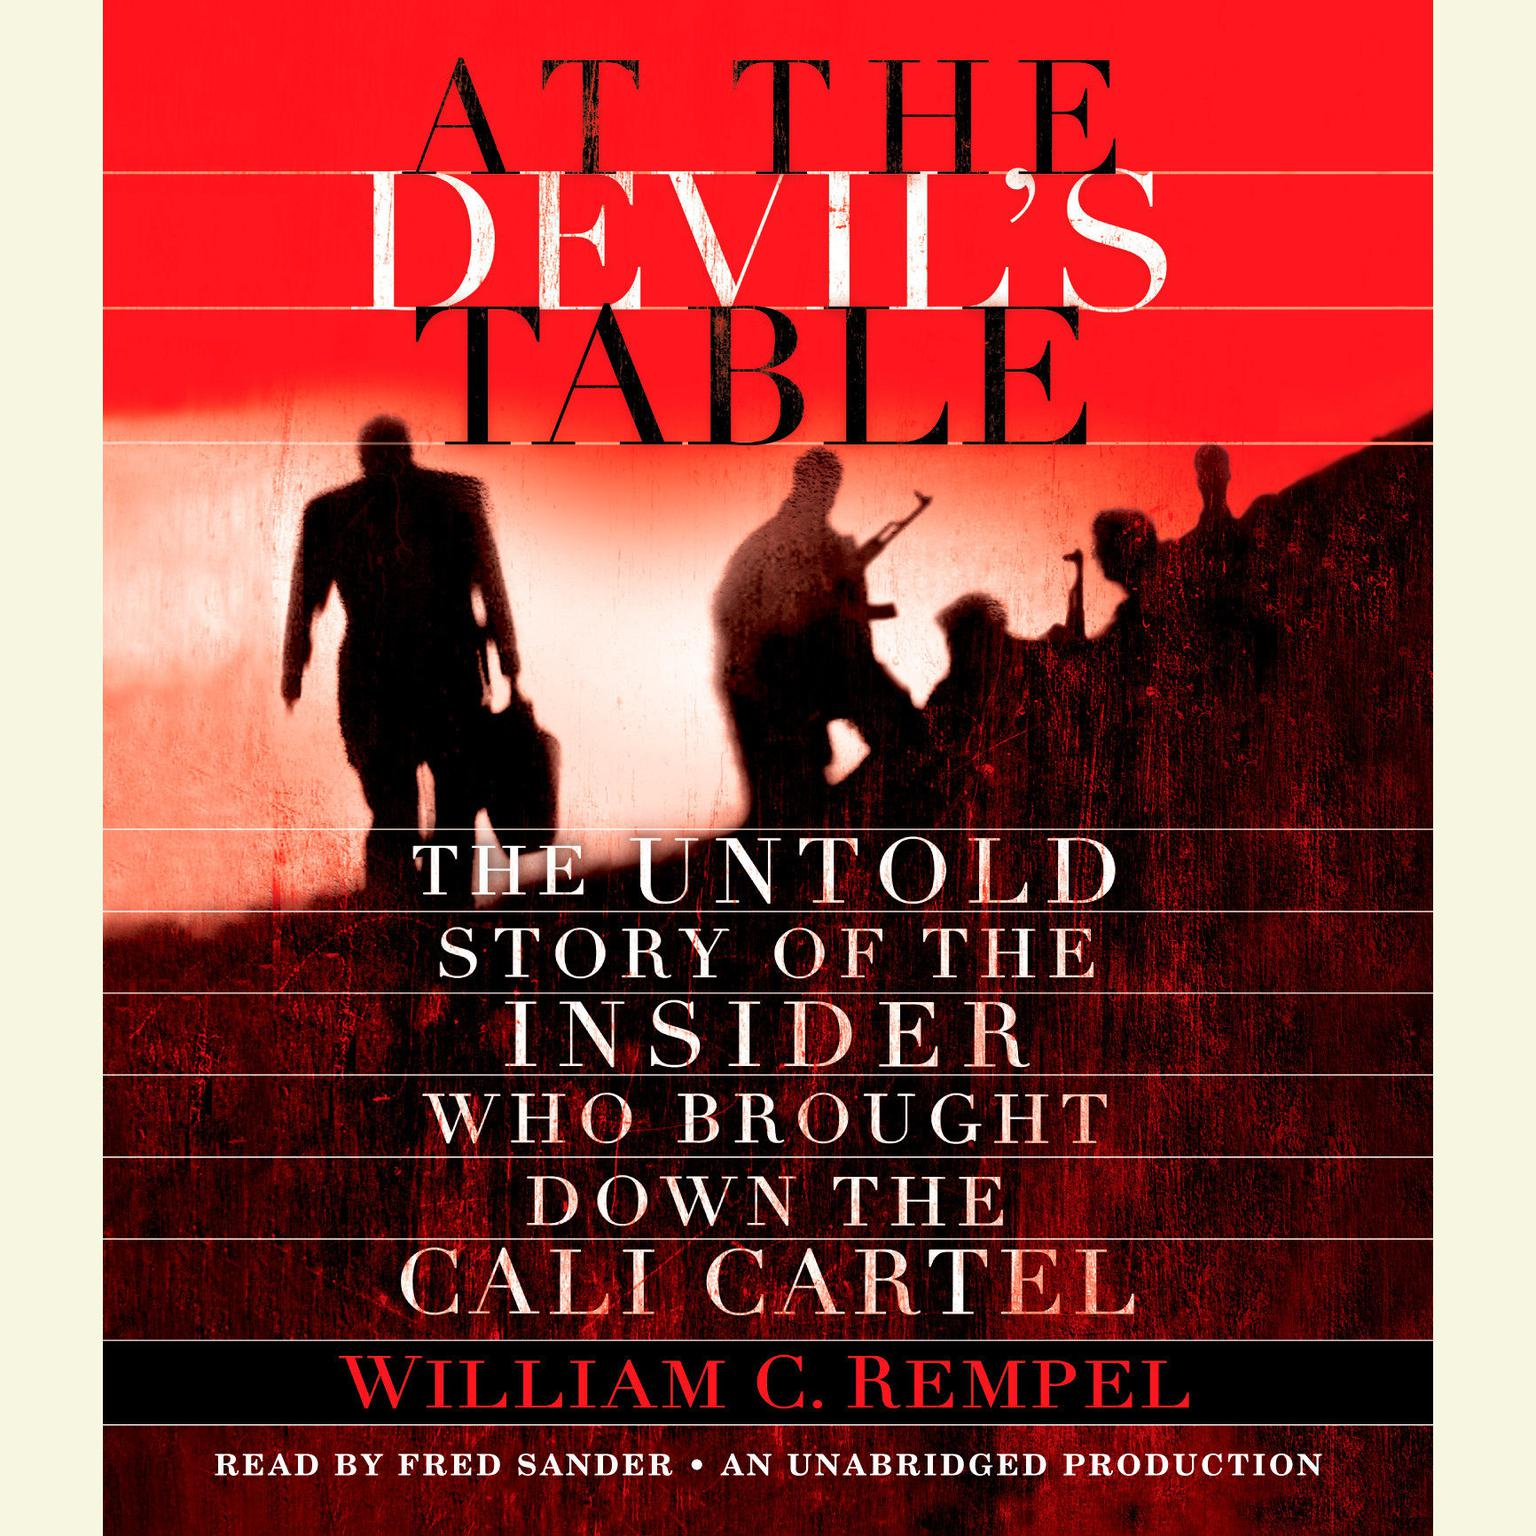 Printable At the Devil's Table: The Untold Story of the Insider Who Brought Down the Cali Cartel Audiobook Cover Art